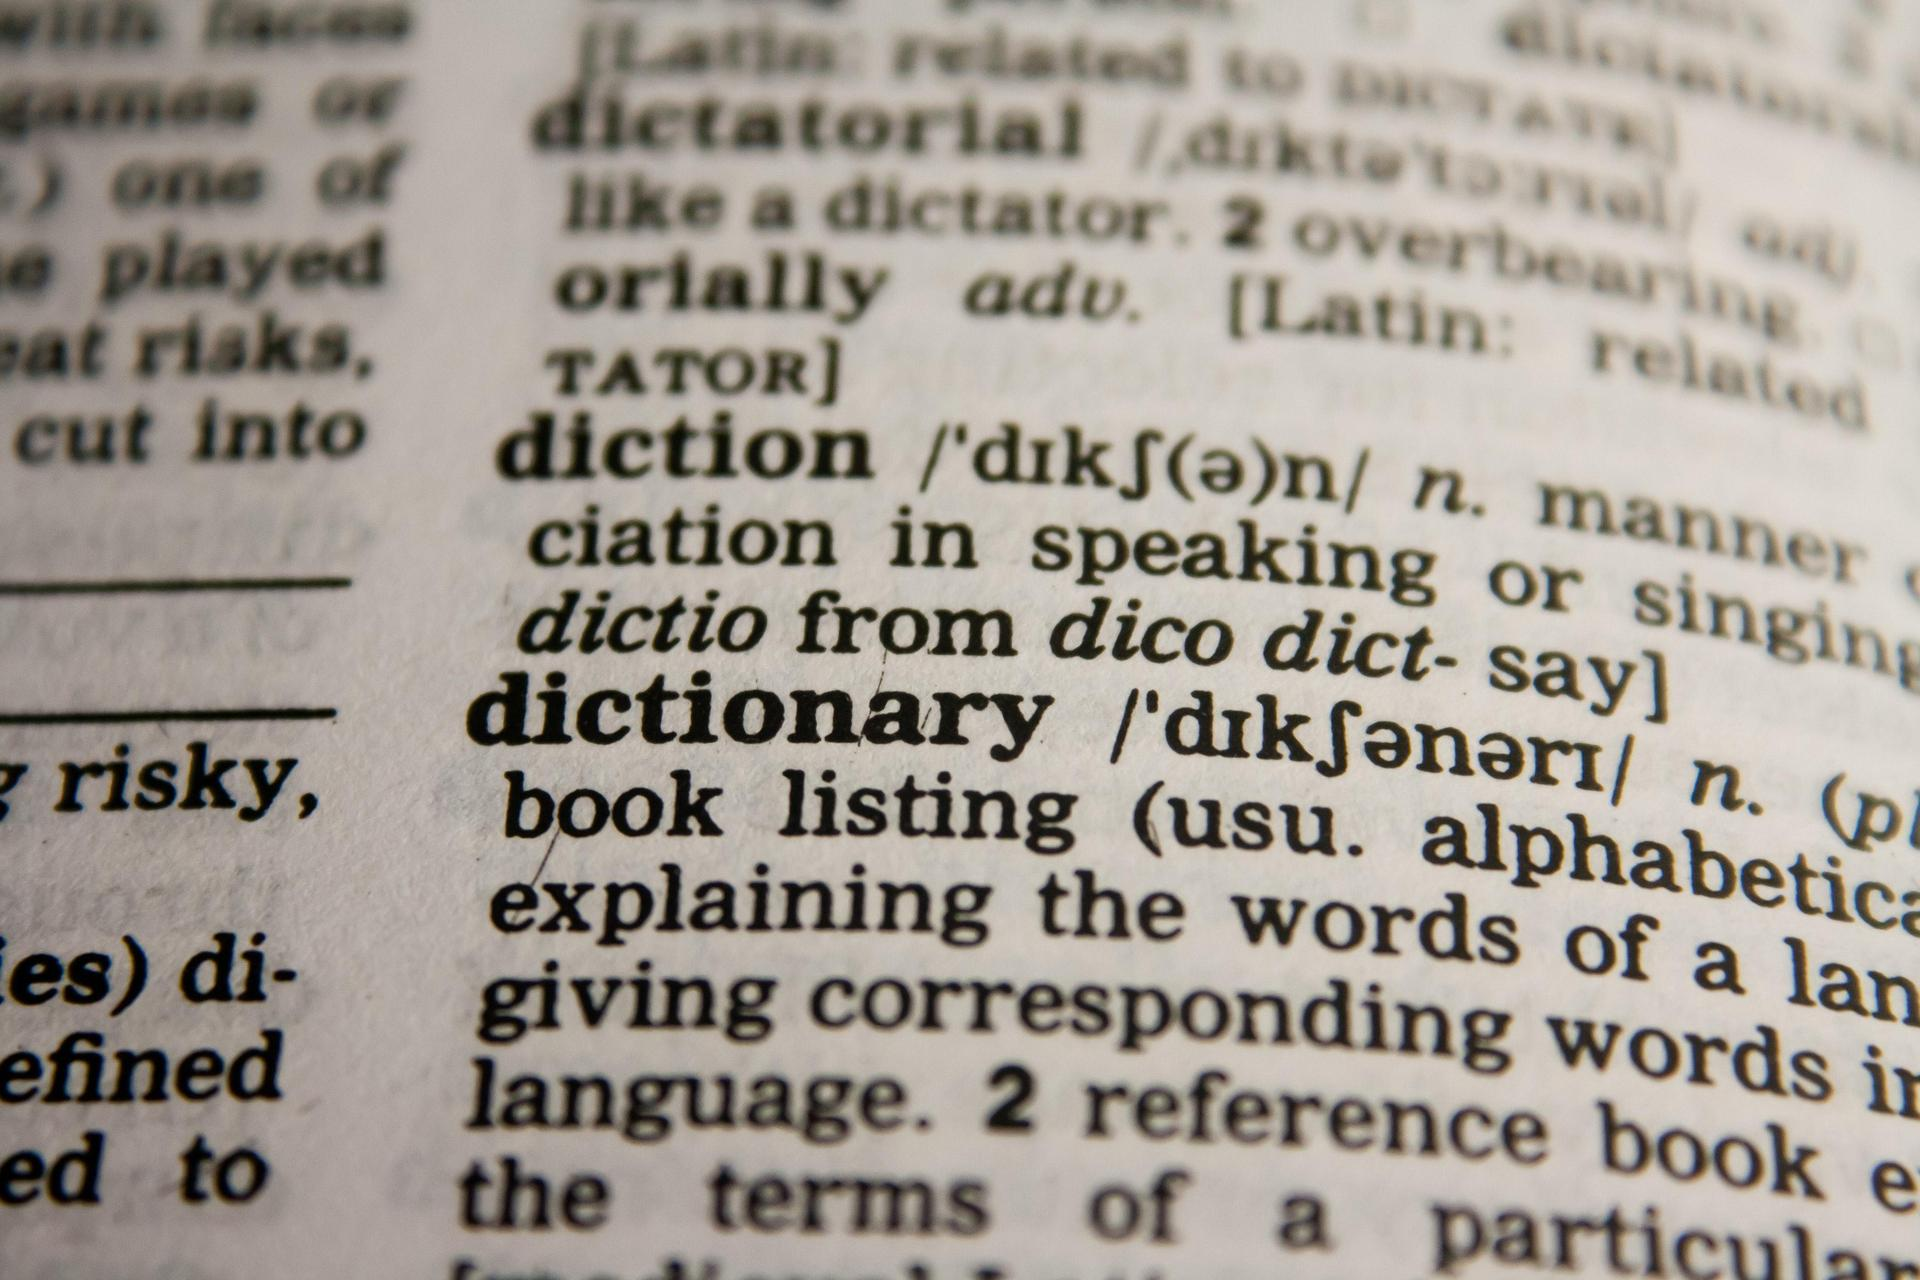 Photograph of a page in a dictionary